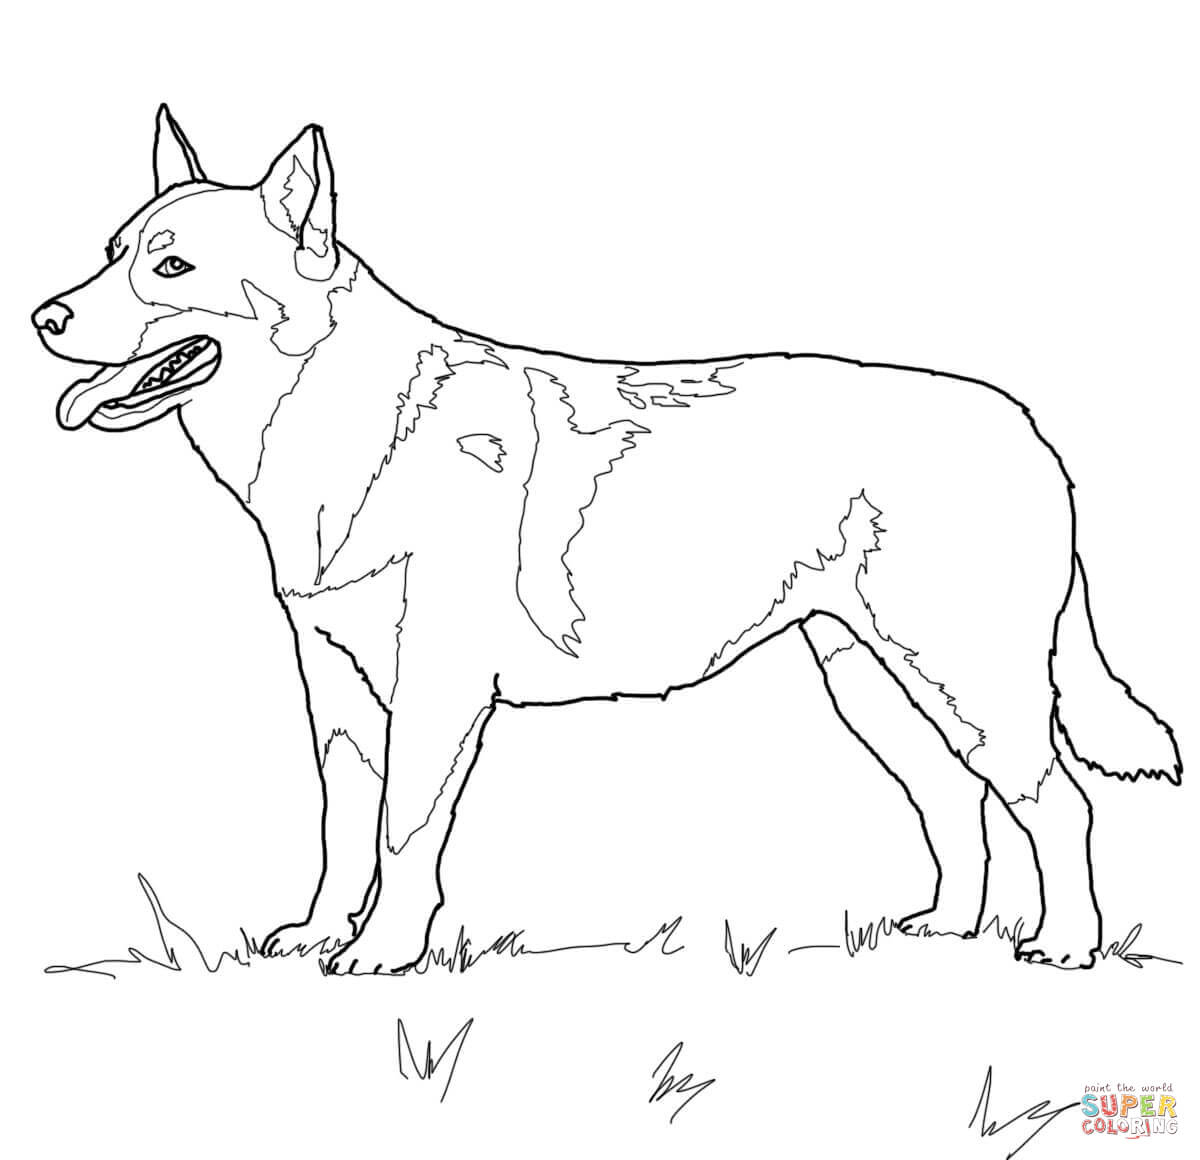 Australian Cattle Dog Coloring Page | Free Printable Coloring Pages - Free Printable Dog Puzzle